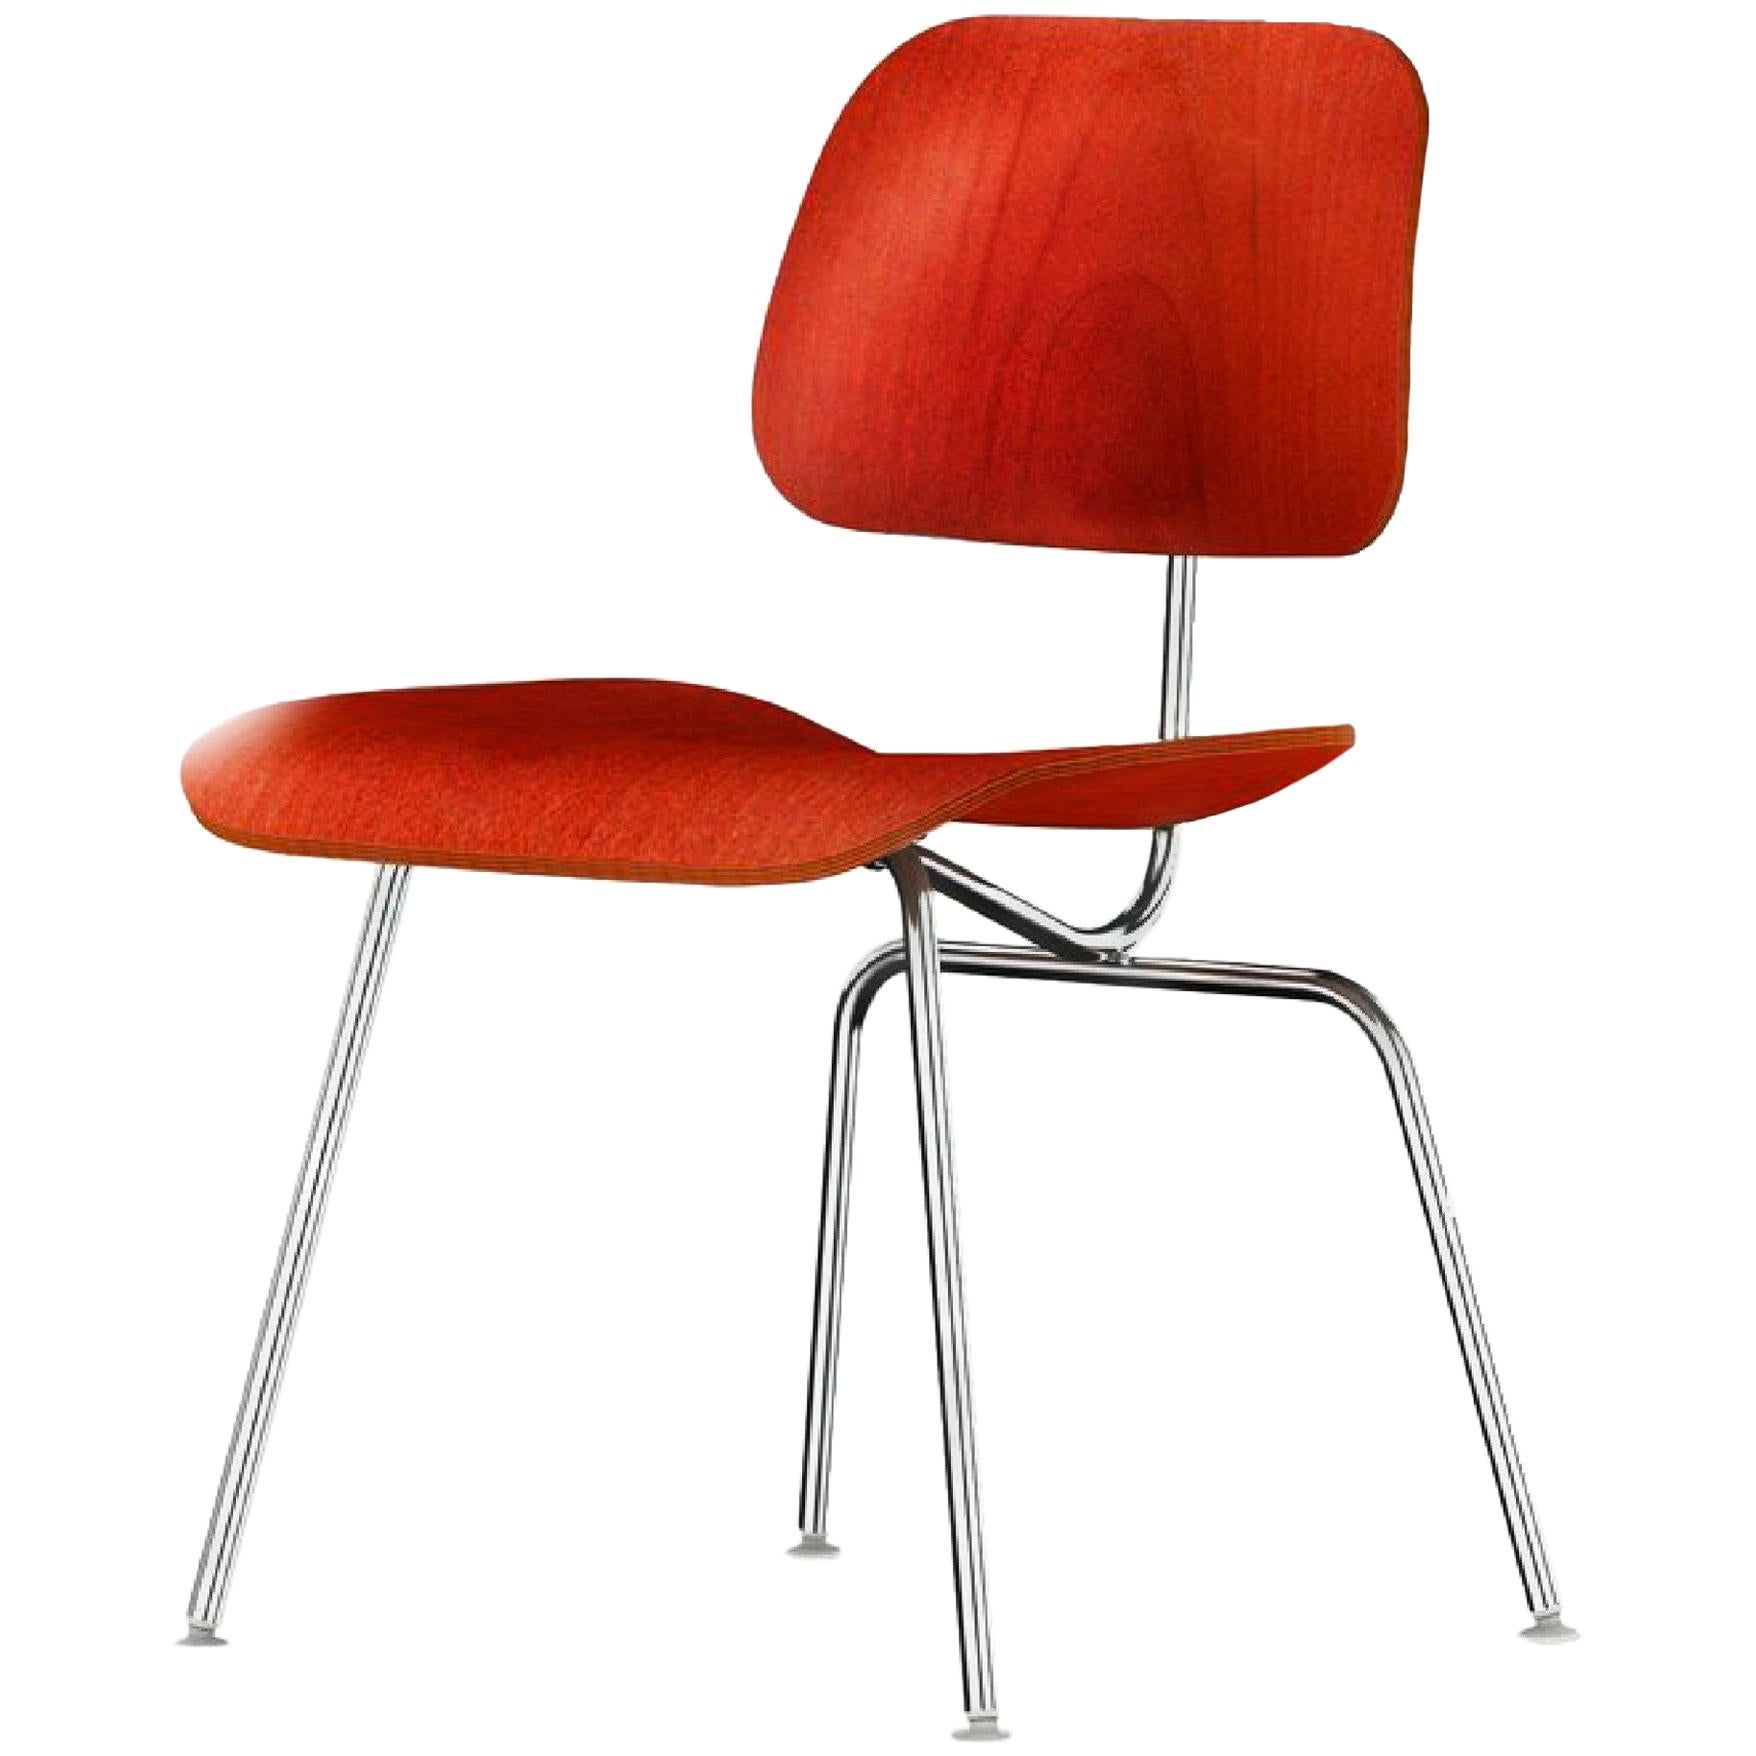 Charles and Ray Eames Red Beech DCM Chair, Herman Miller, Dining, Side Chair